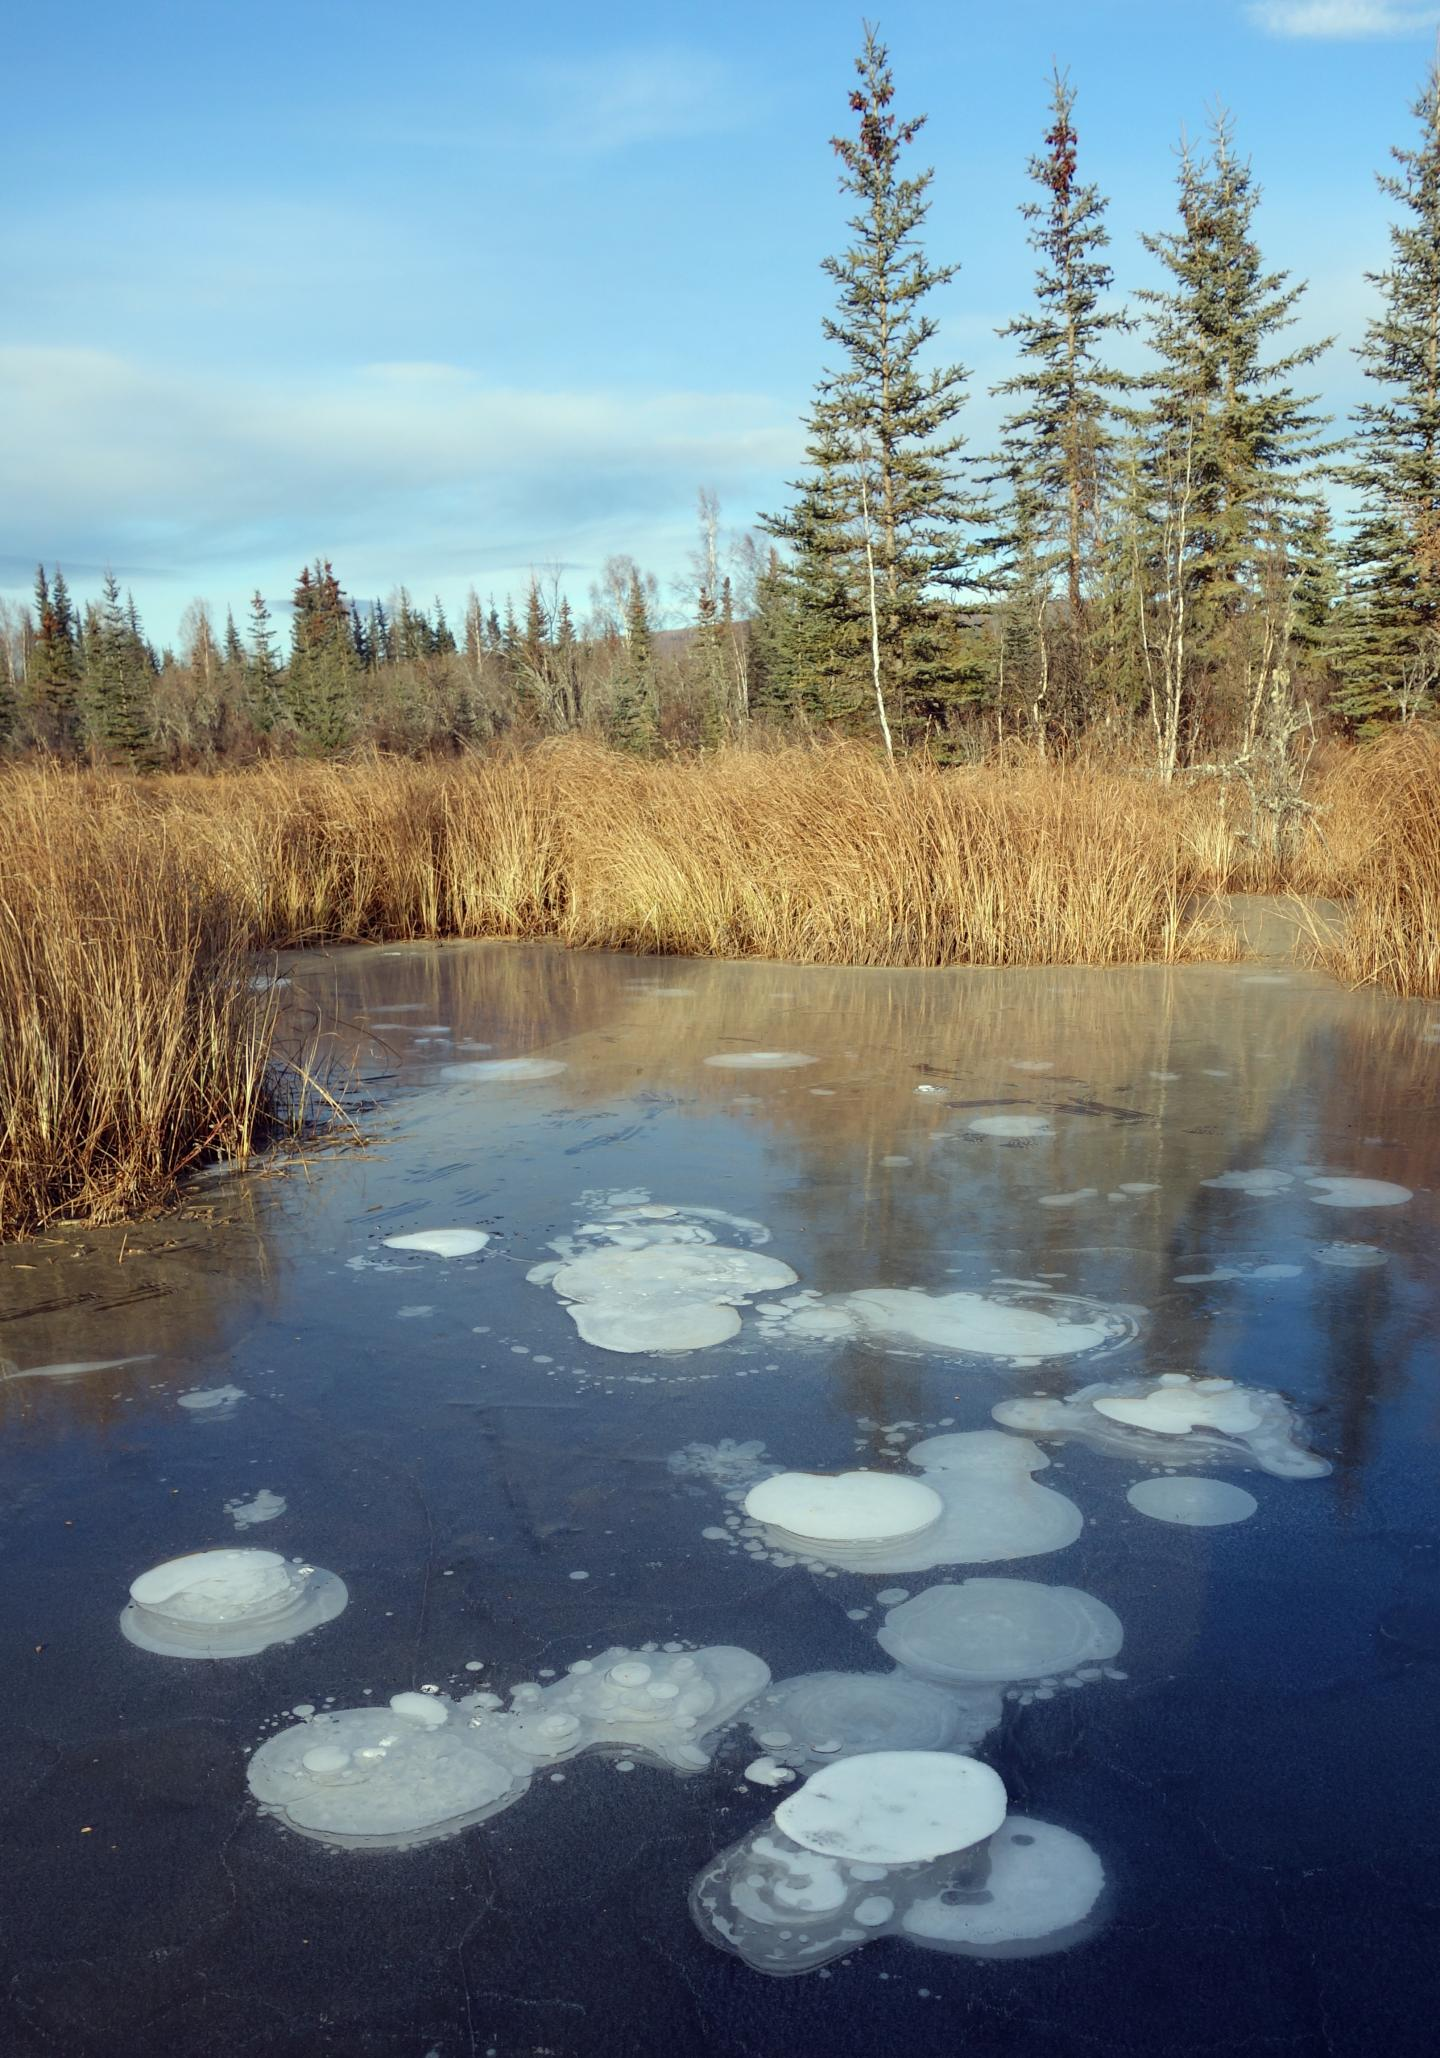 Methane bubbles trapped in the ice on a pond near Fairbanks, Alaska.